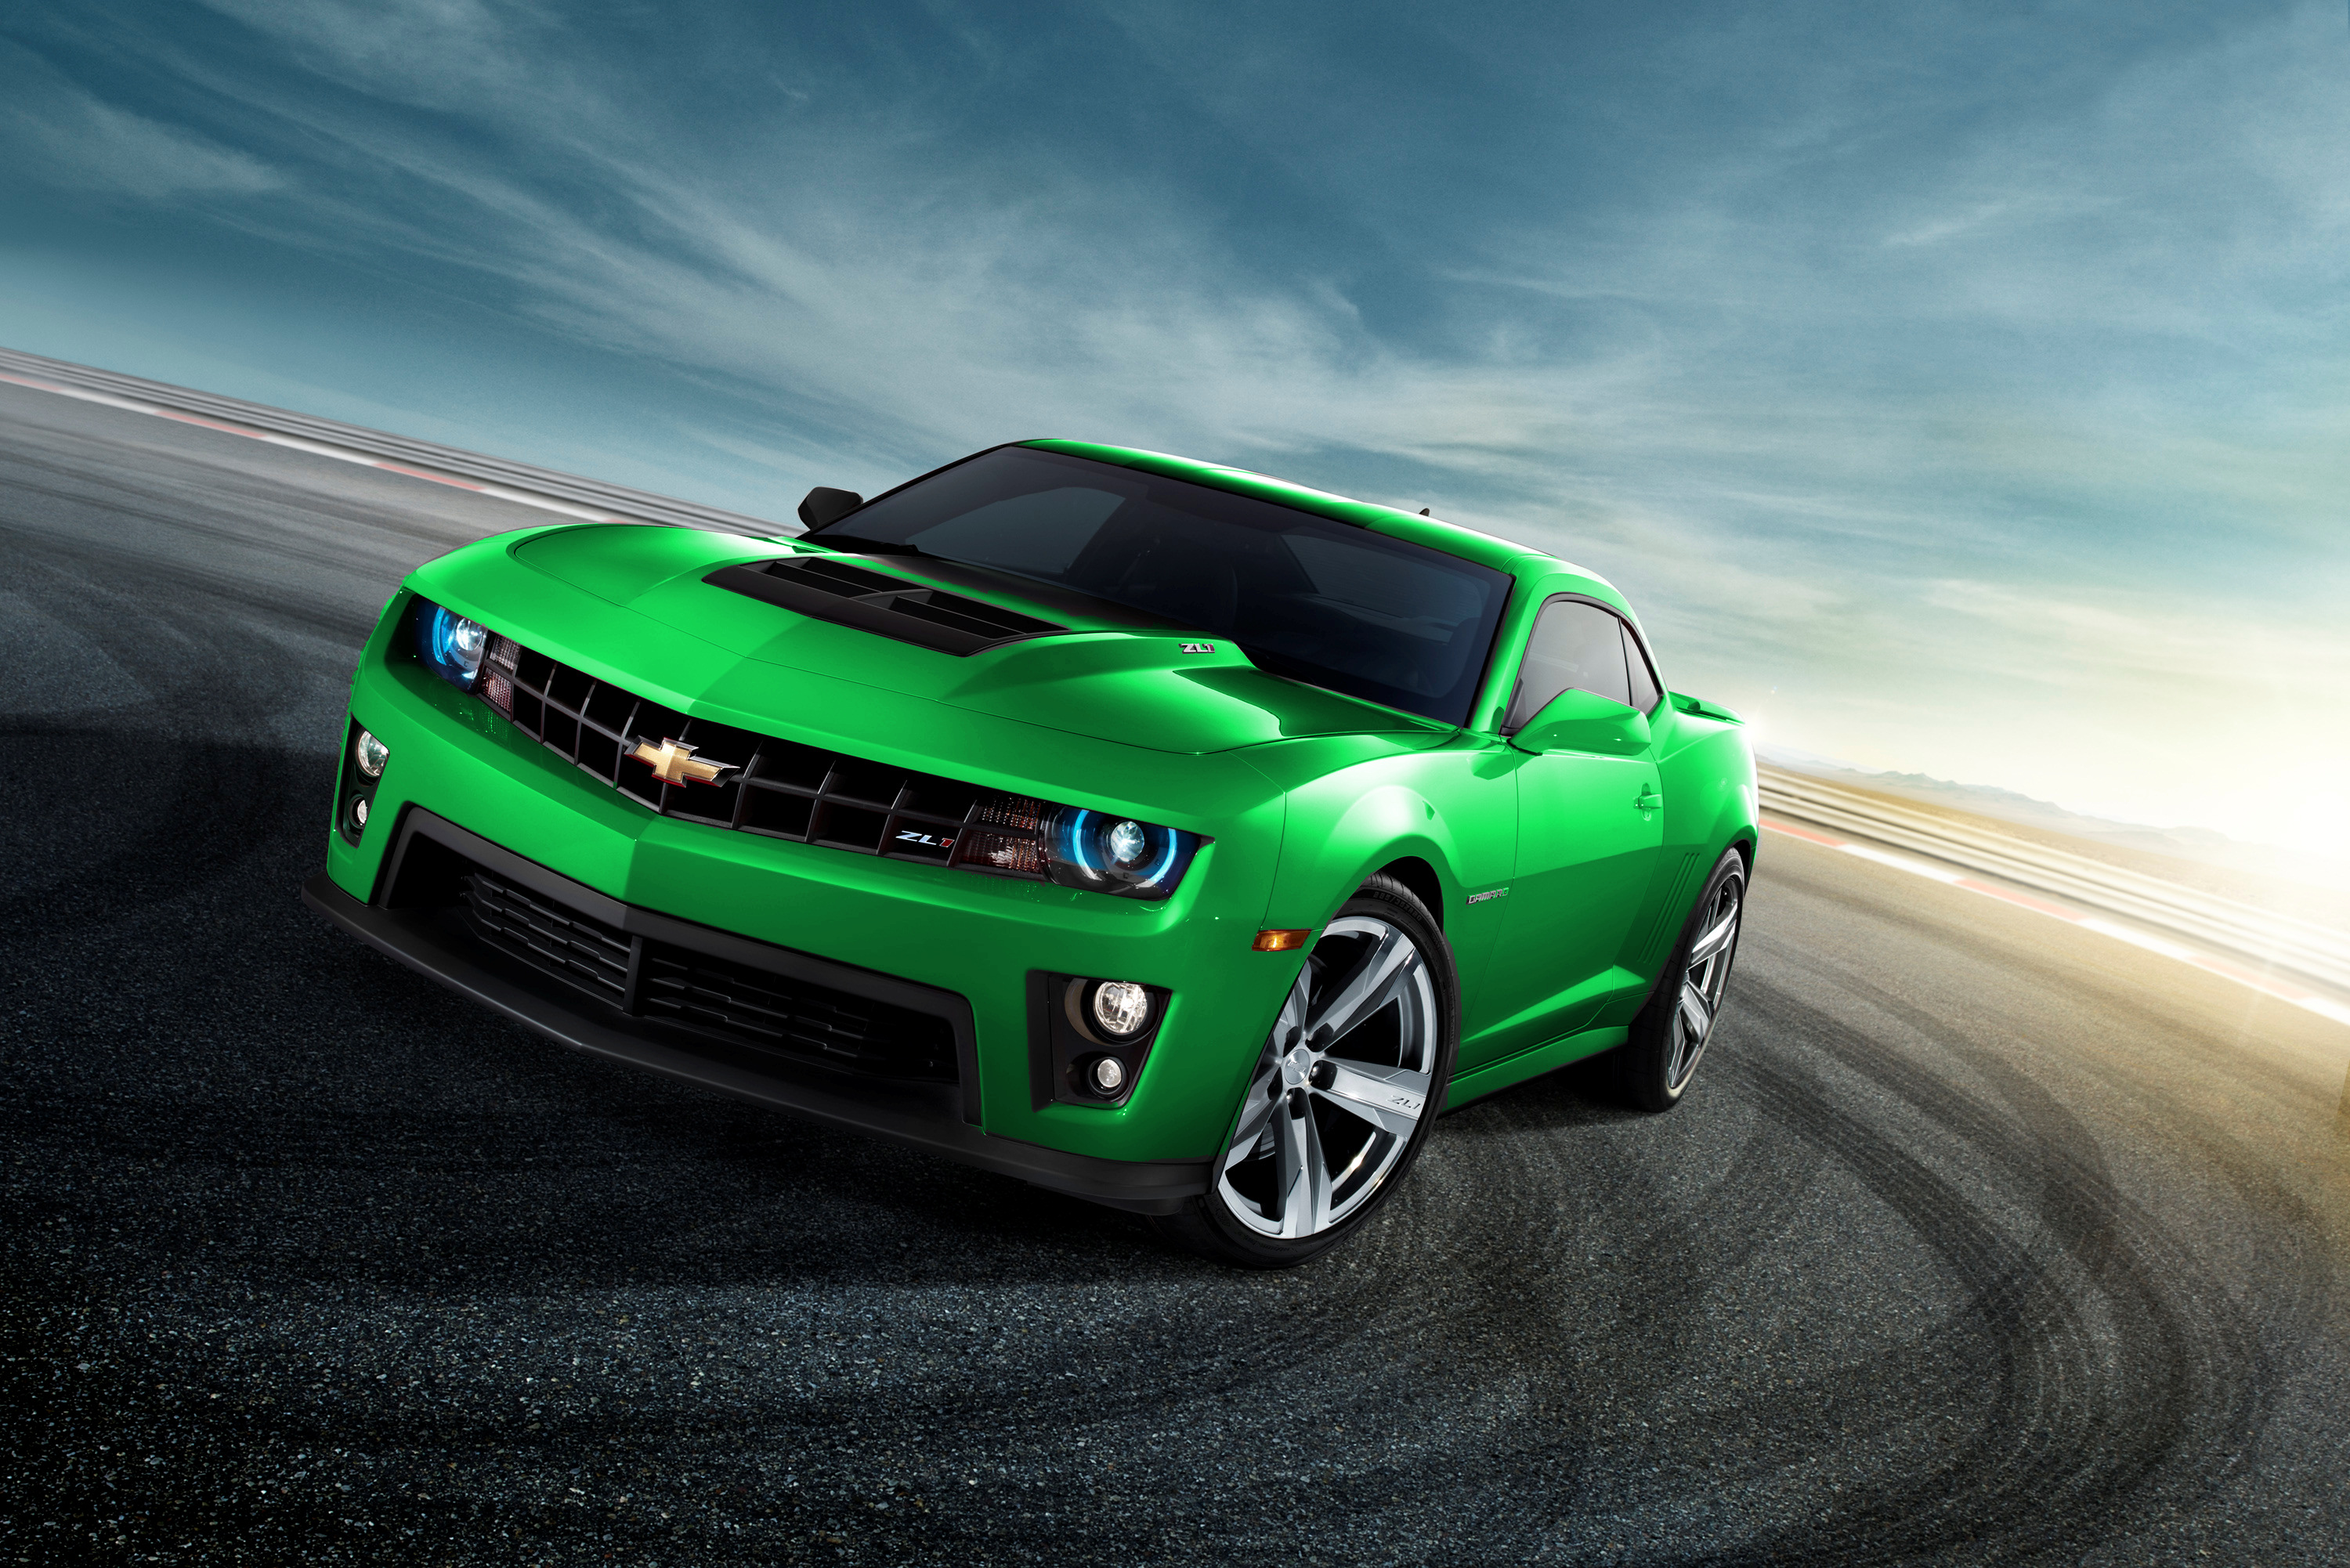 2012 Camaro Zl1 Green Flickr Photo Sharing